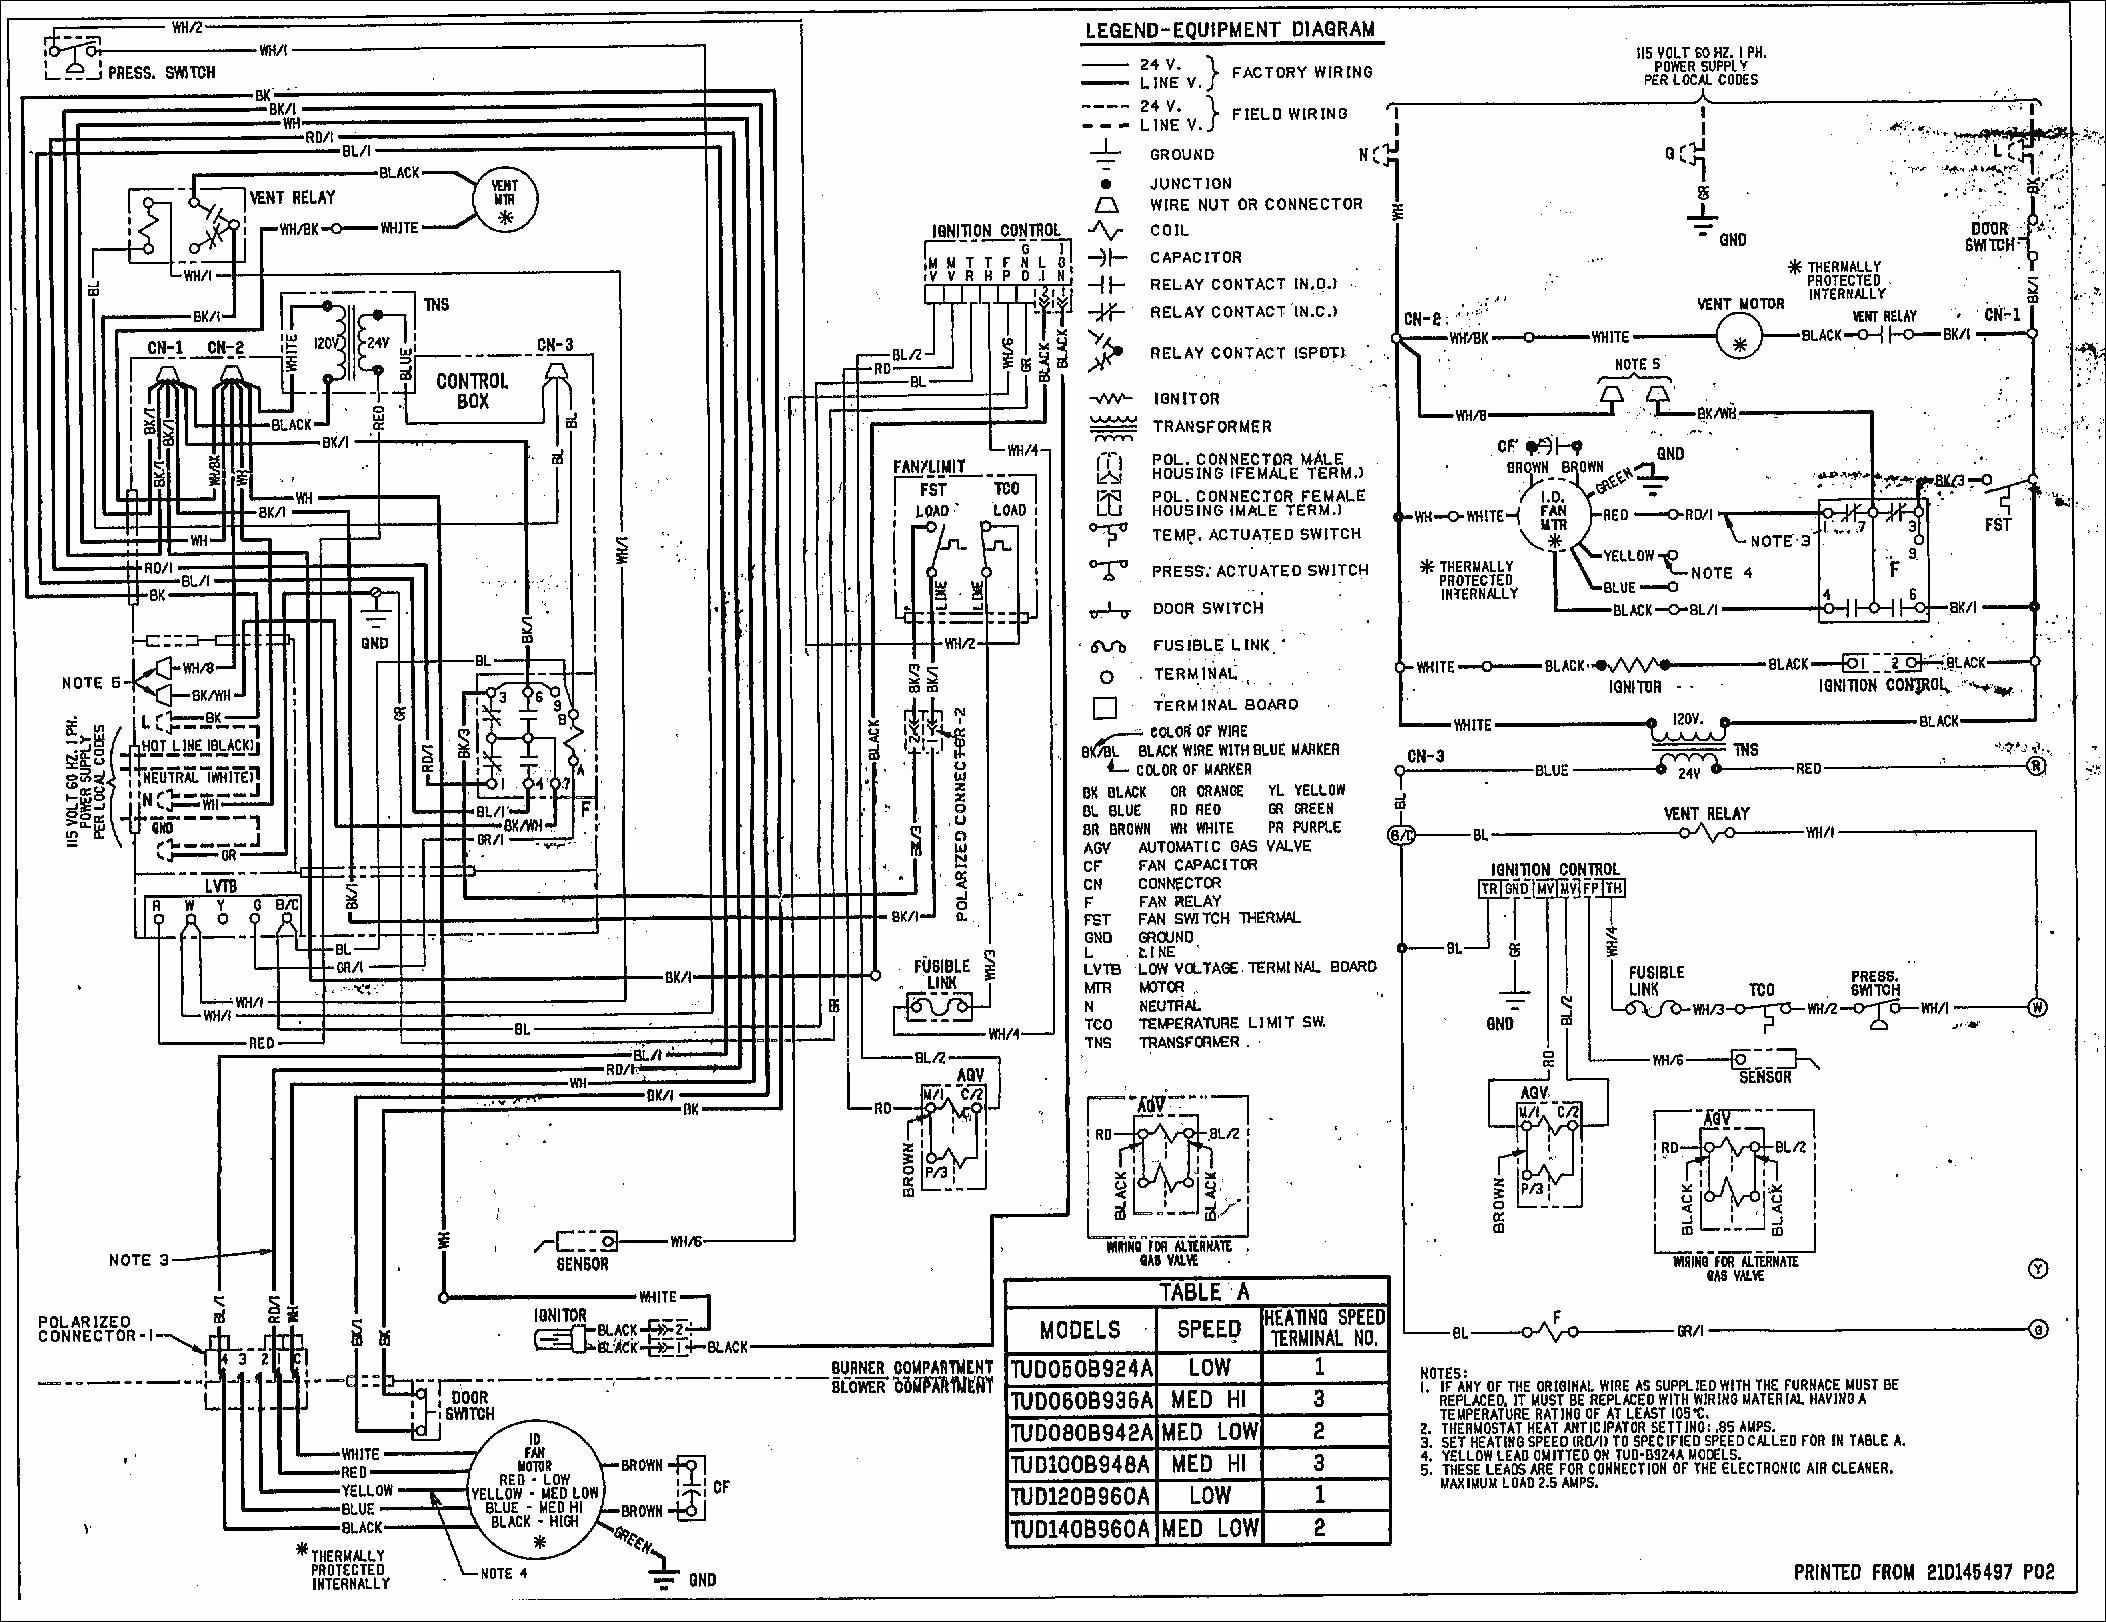 intertherm e2eb 015ha wiring diagram to sequence nordyne e2eb 015ha wiring diagram #2